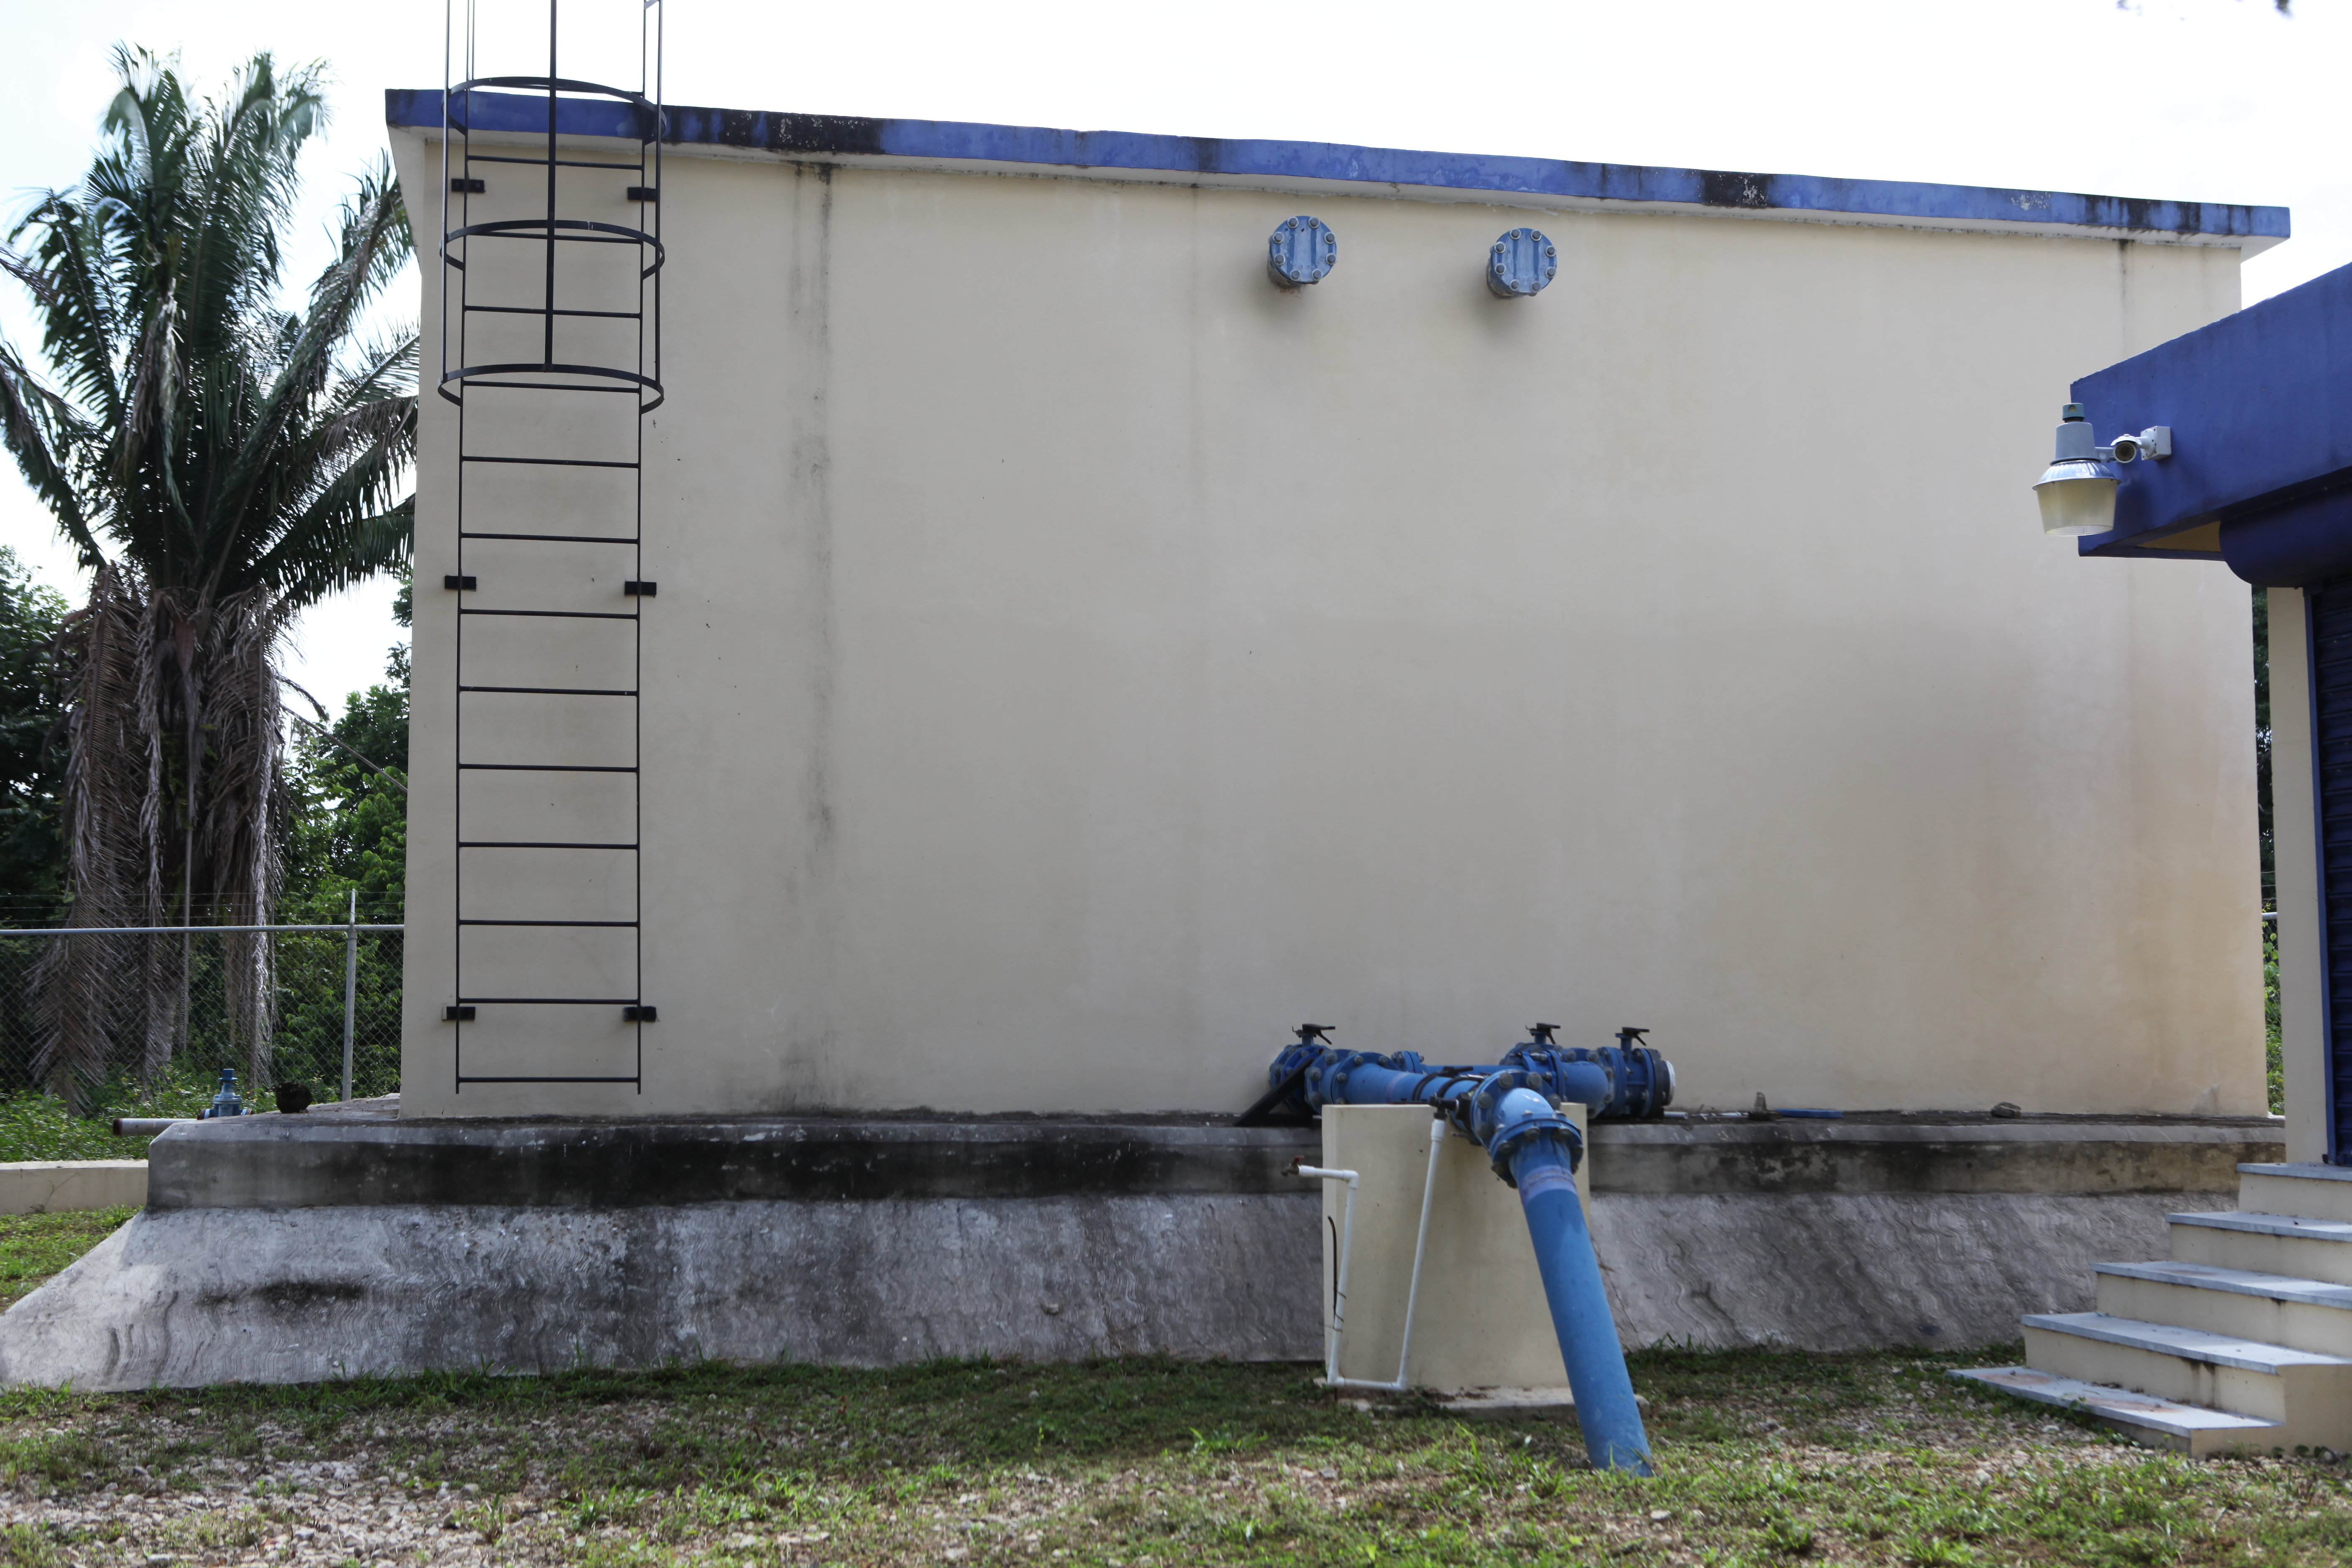 One of the water storage stations constructed as part of the project